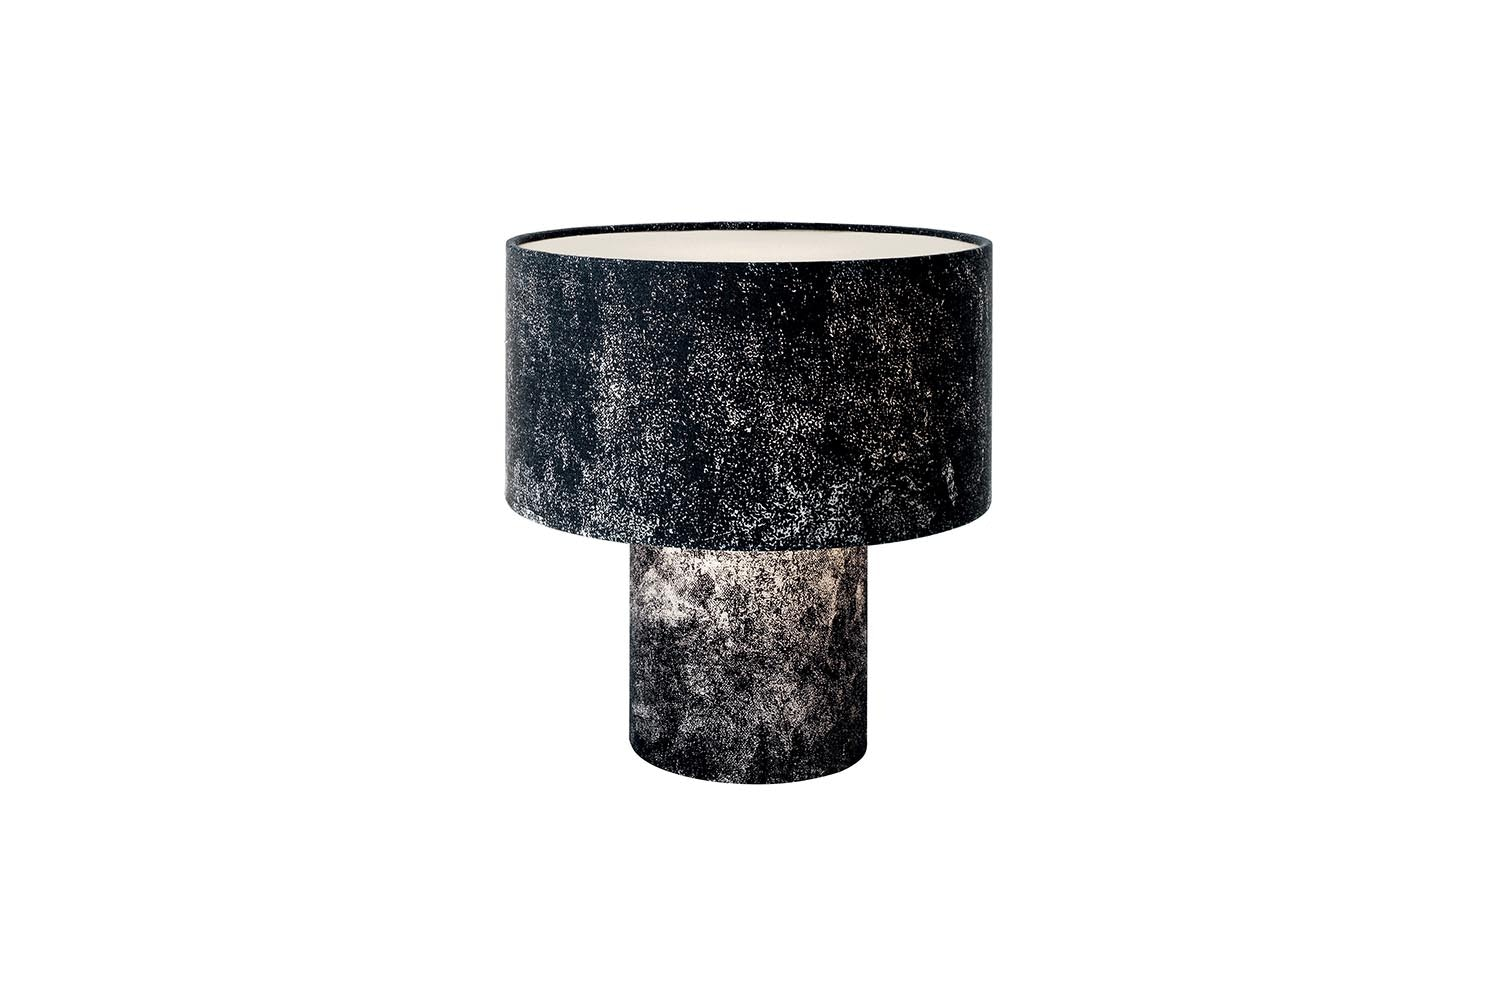 Pipe Table Lamp by Successful Living from DIESEL for Foscarini